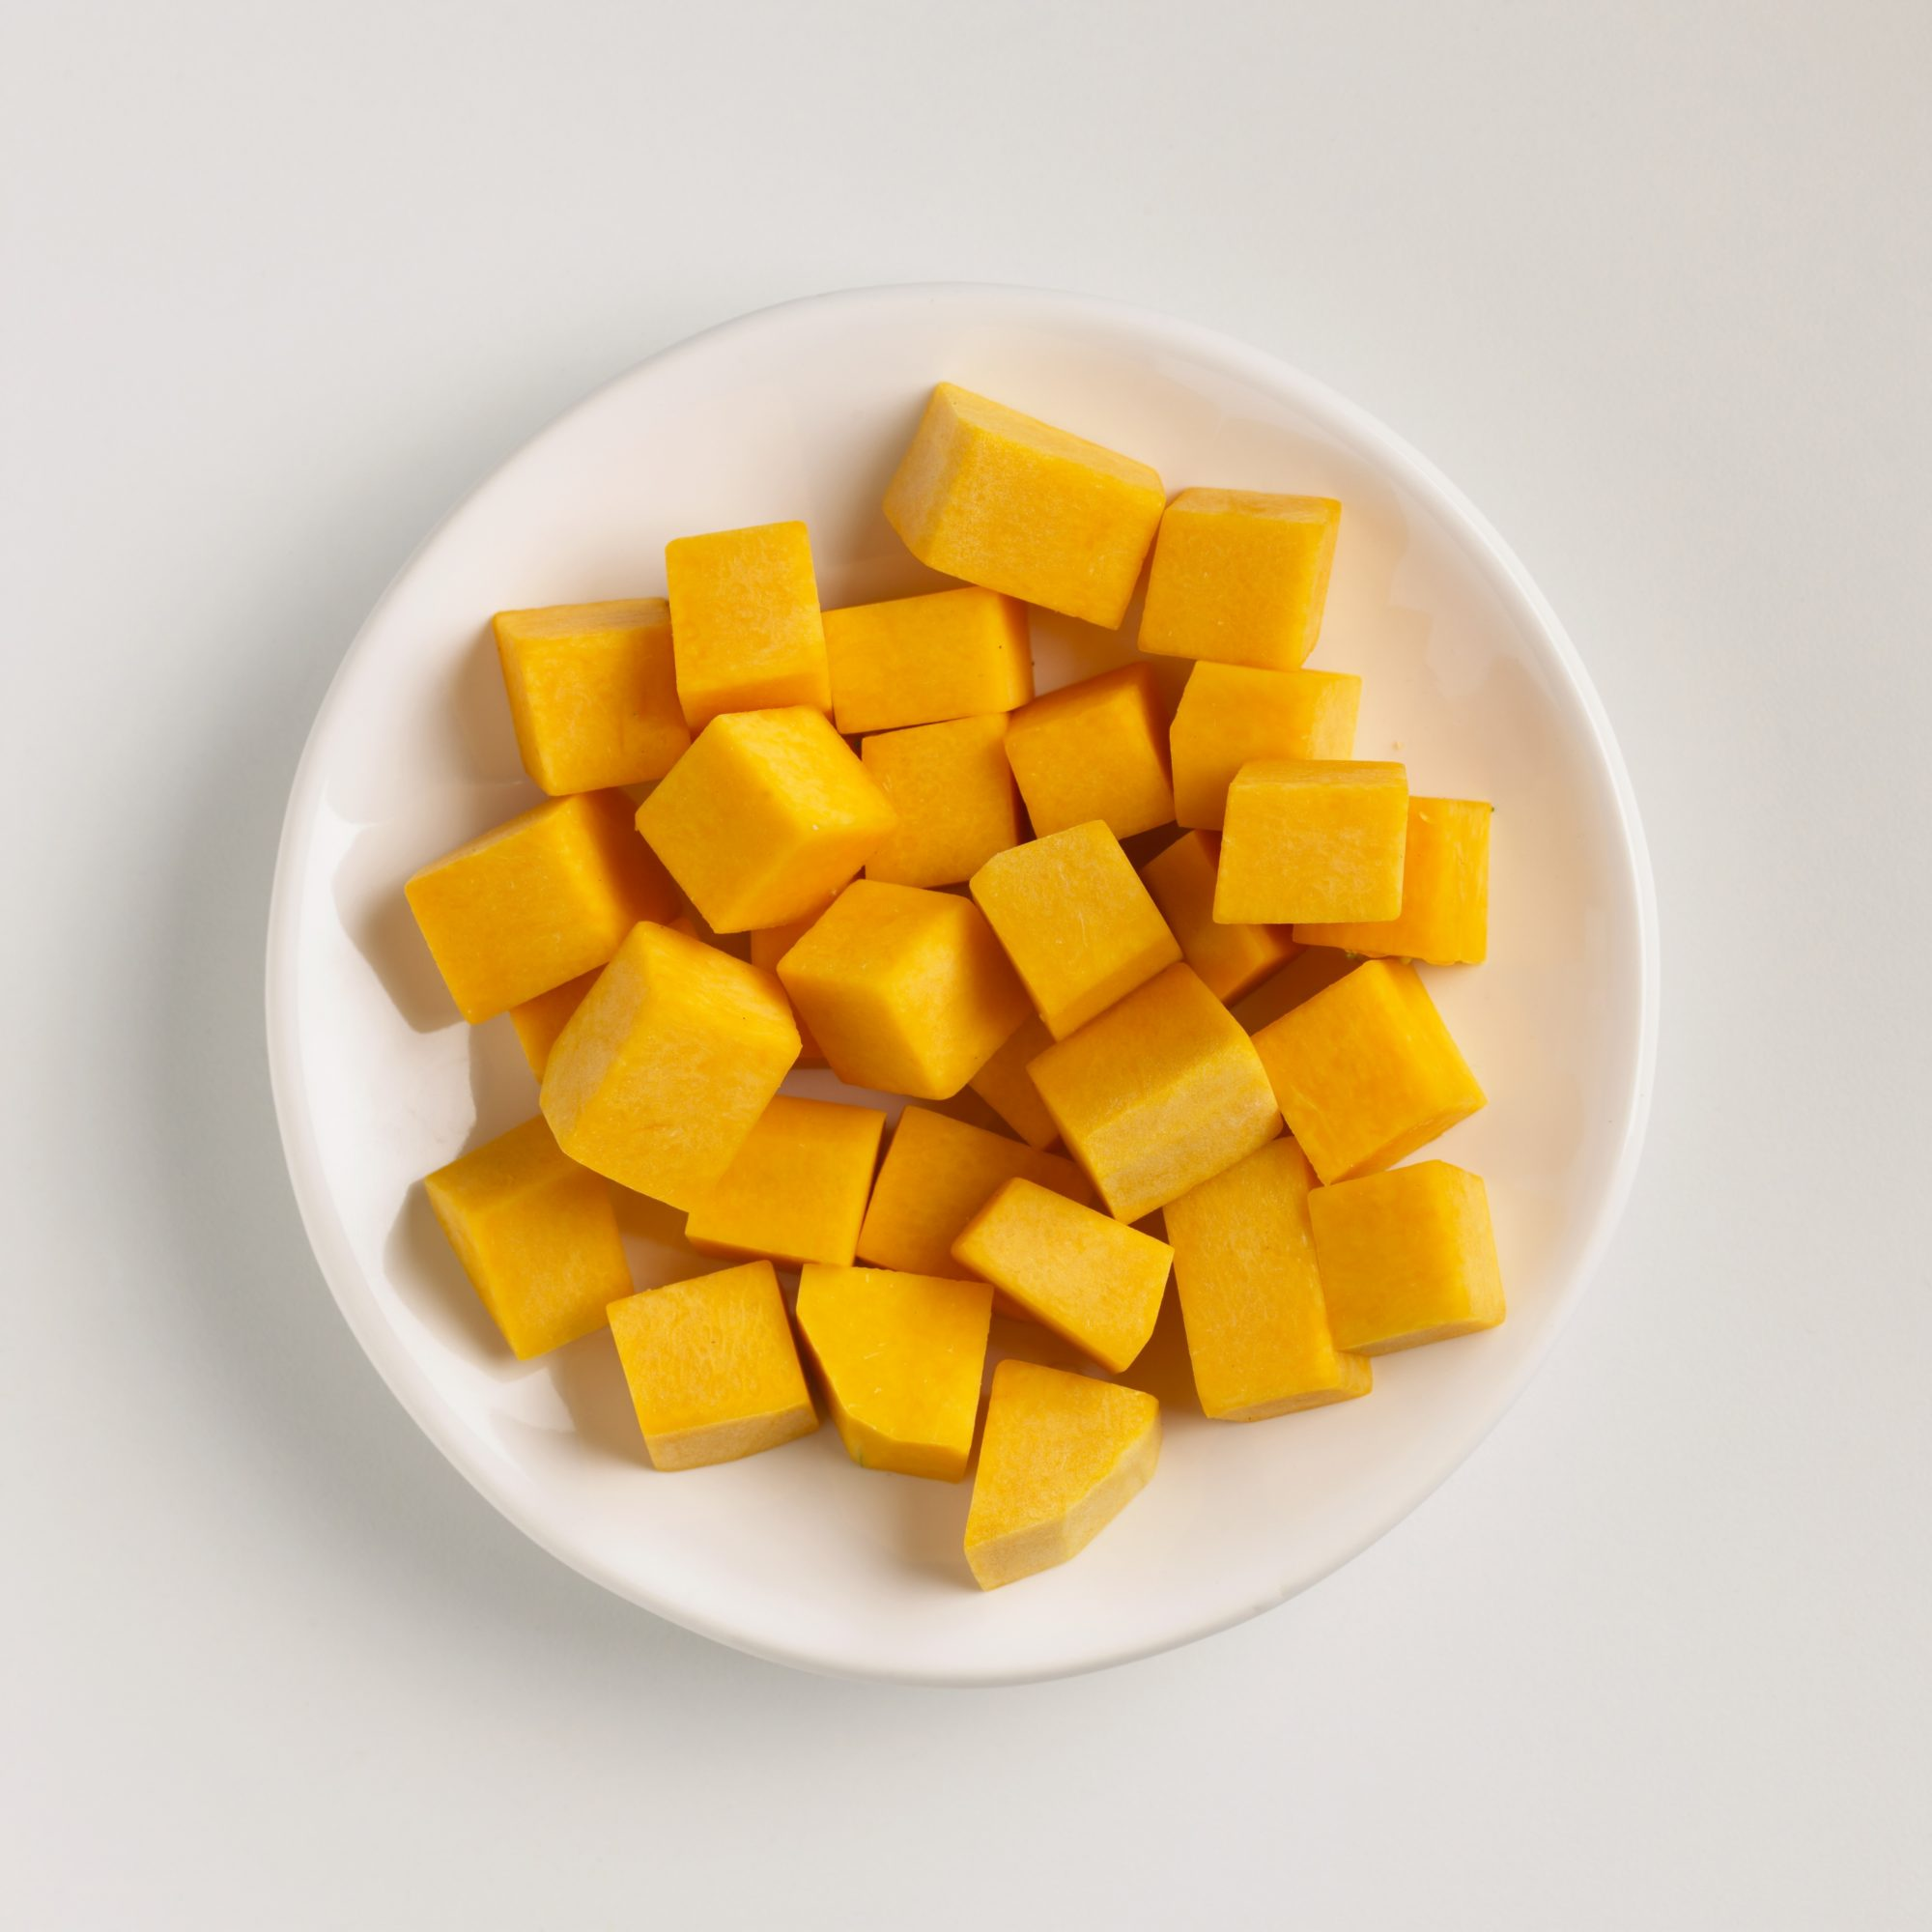 Cubed pumpkin on a white plate.